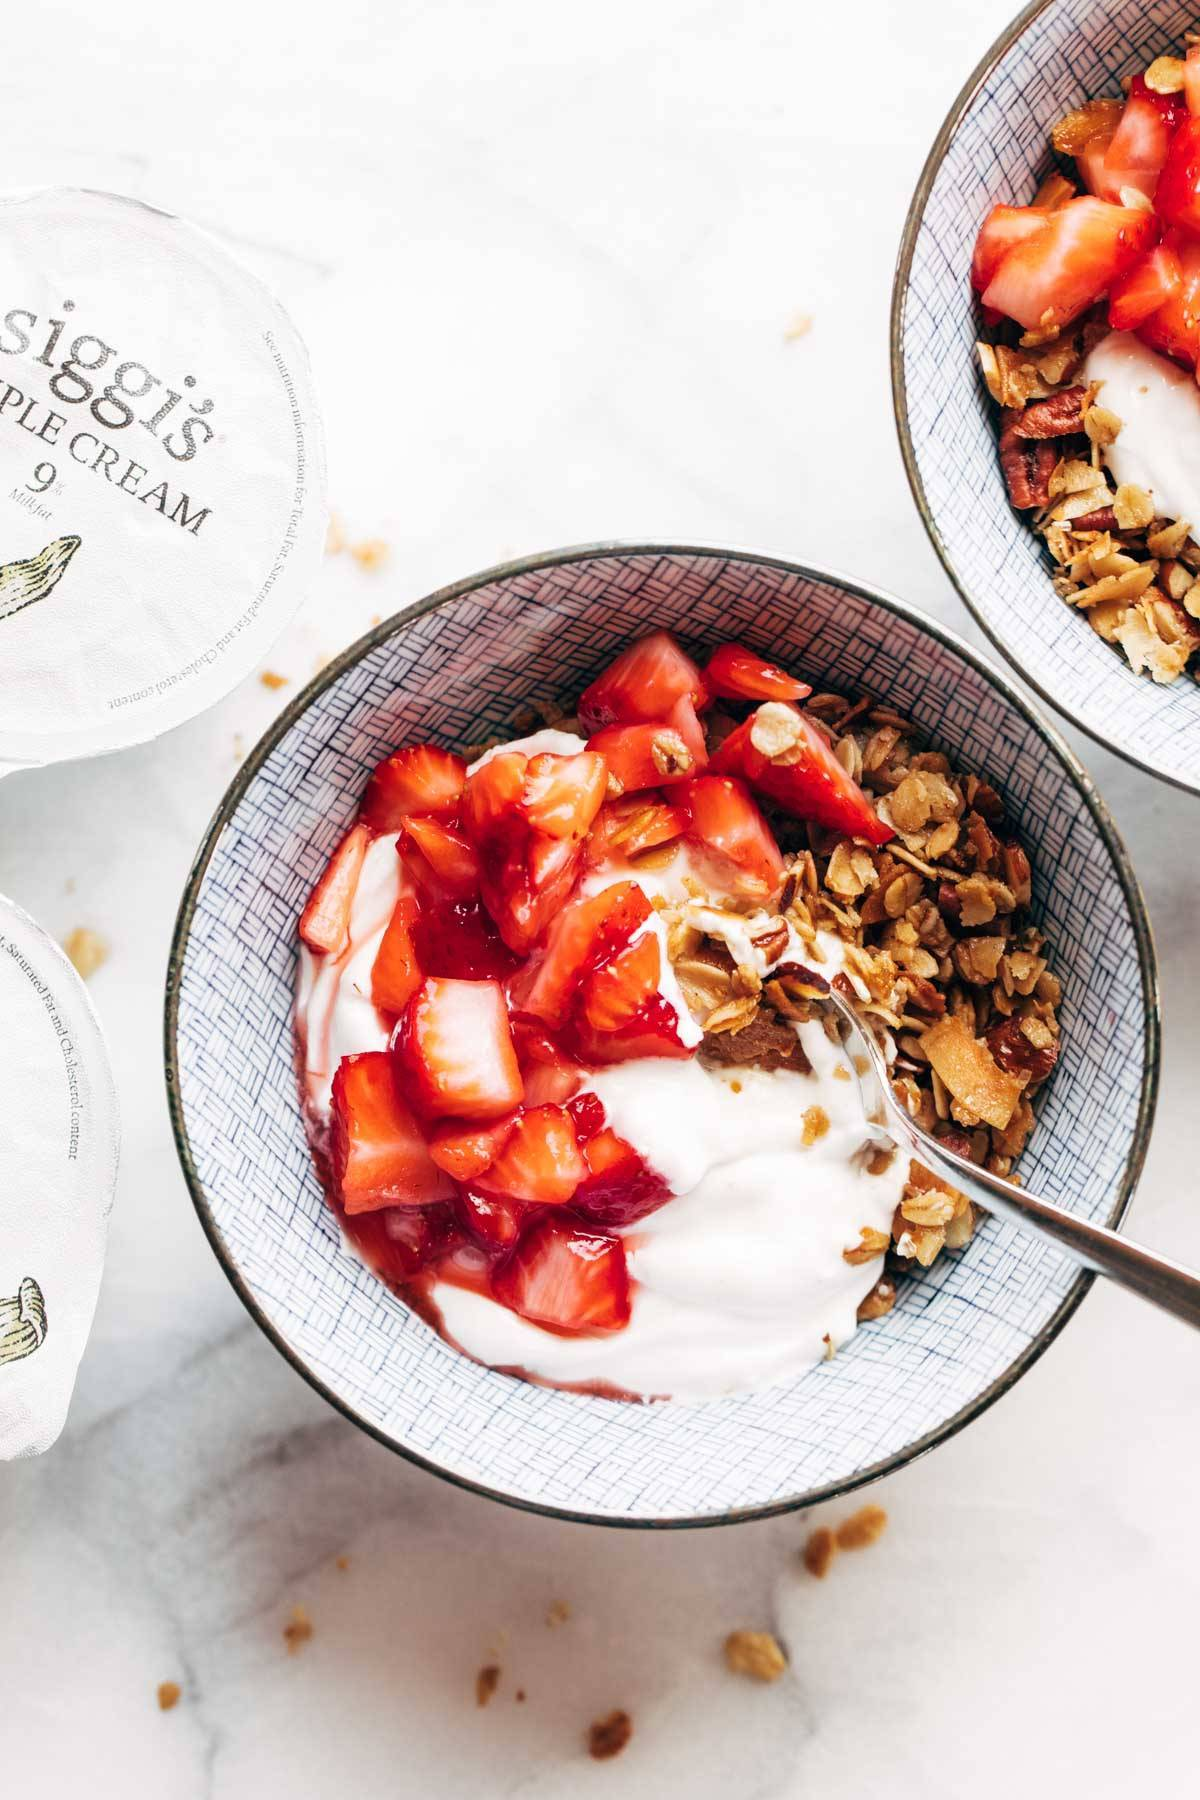 Strawberry Shortcake Yogurt Bowls with siggi's yogurt.